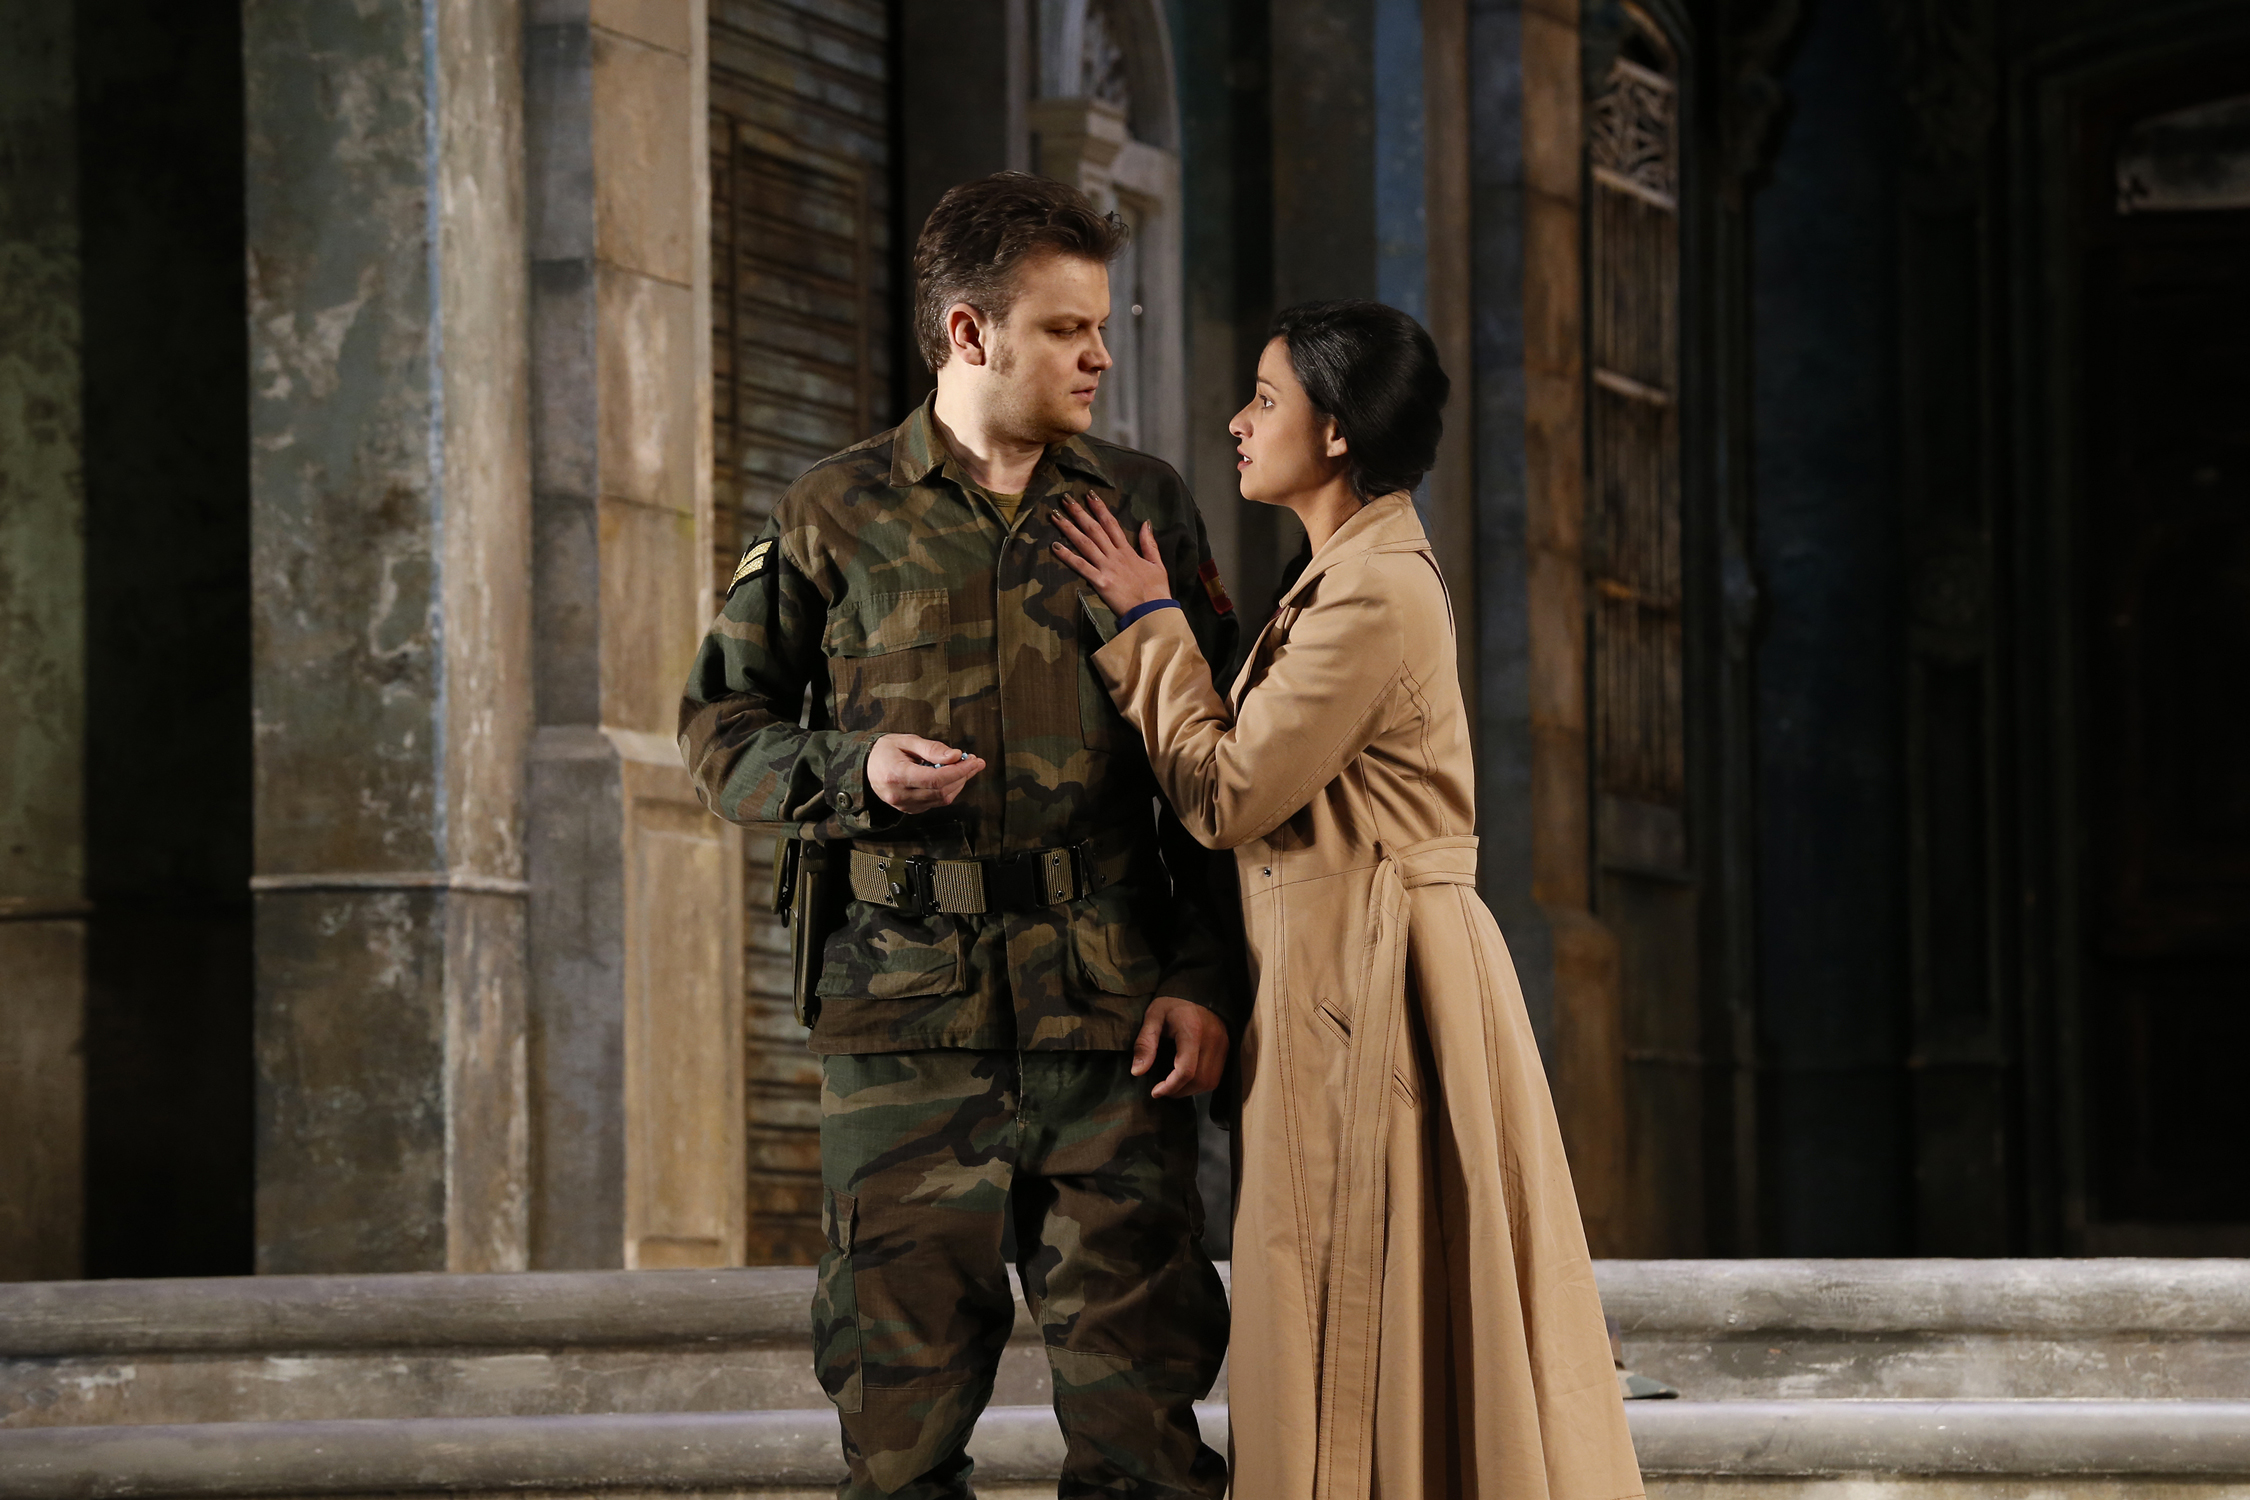 Stacey Alleaume as Micaëla and Dmytro Popov as Don José in Carmen; Melbourne 2017. Photo credit: Jeff Busby